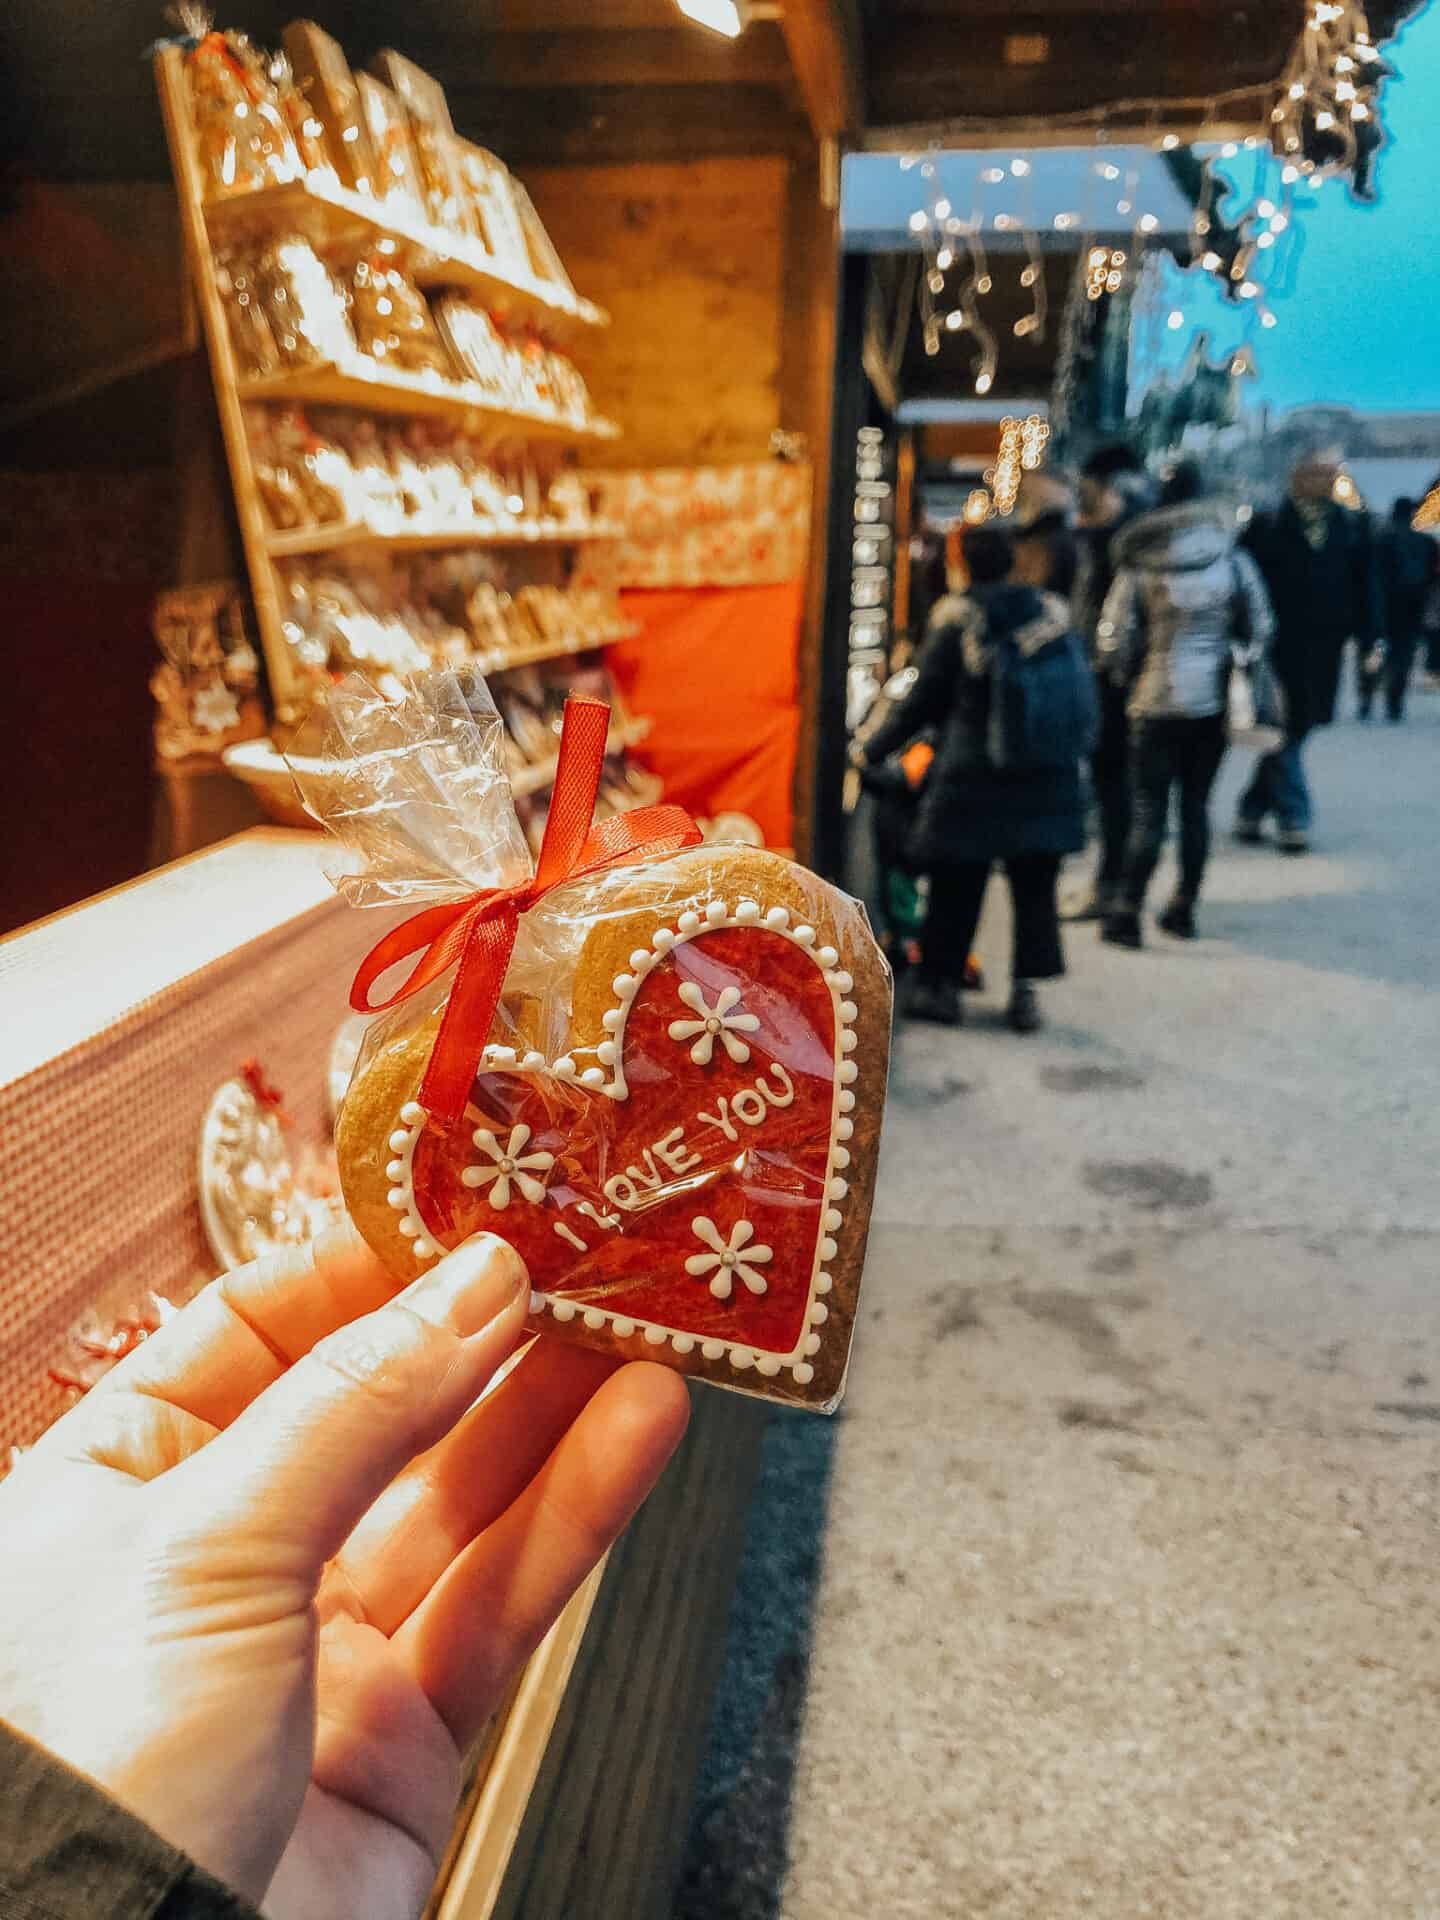 Ginger bread with I love you written on it, at a Vienna Christmas market